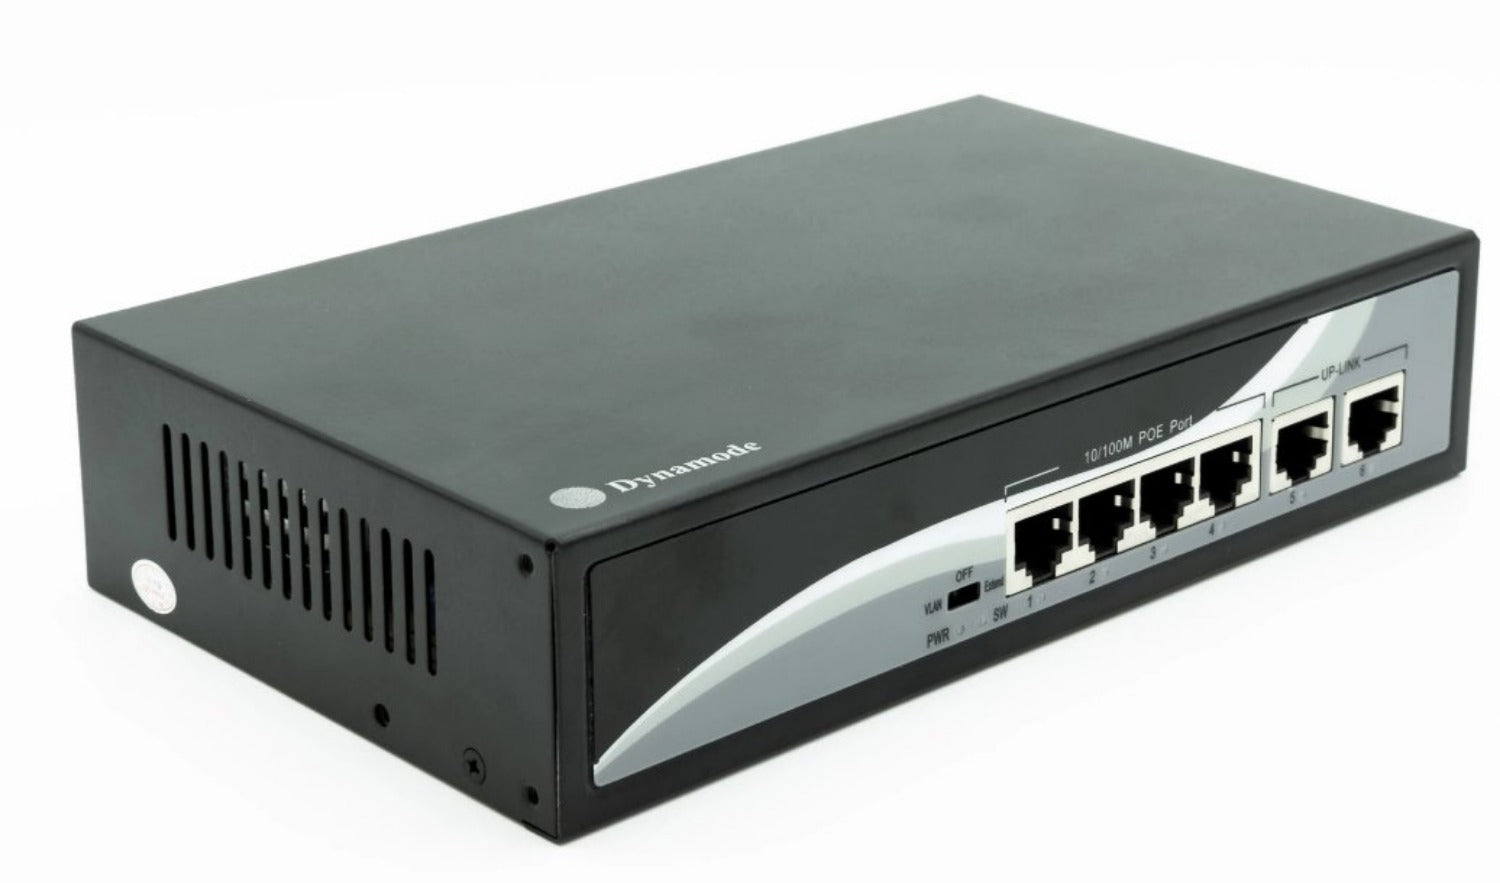 Dynamode SW40010-POE 4 Port Fast Ethernet POE Switch